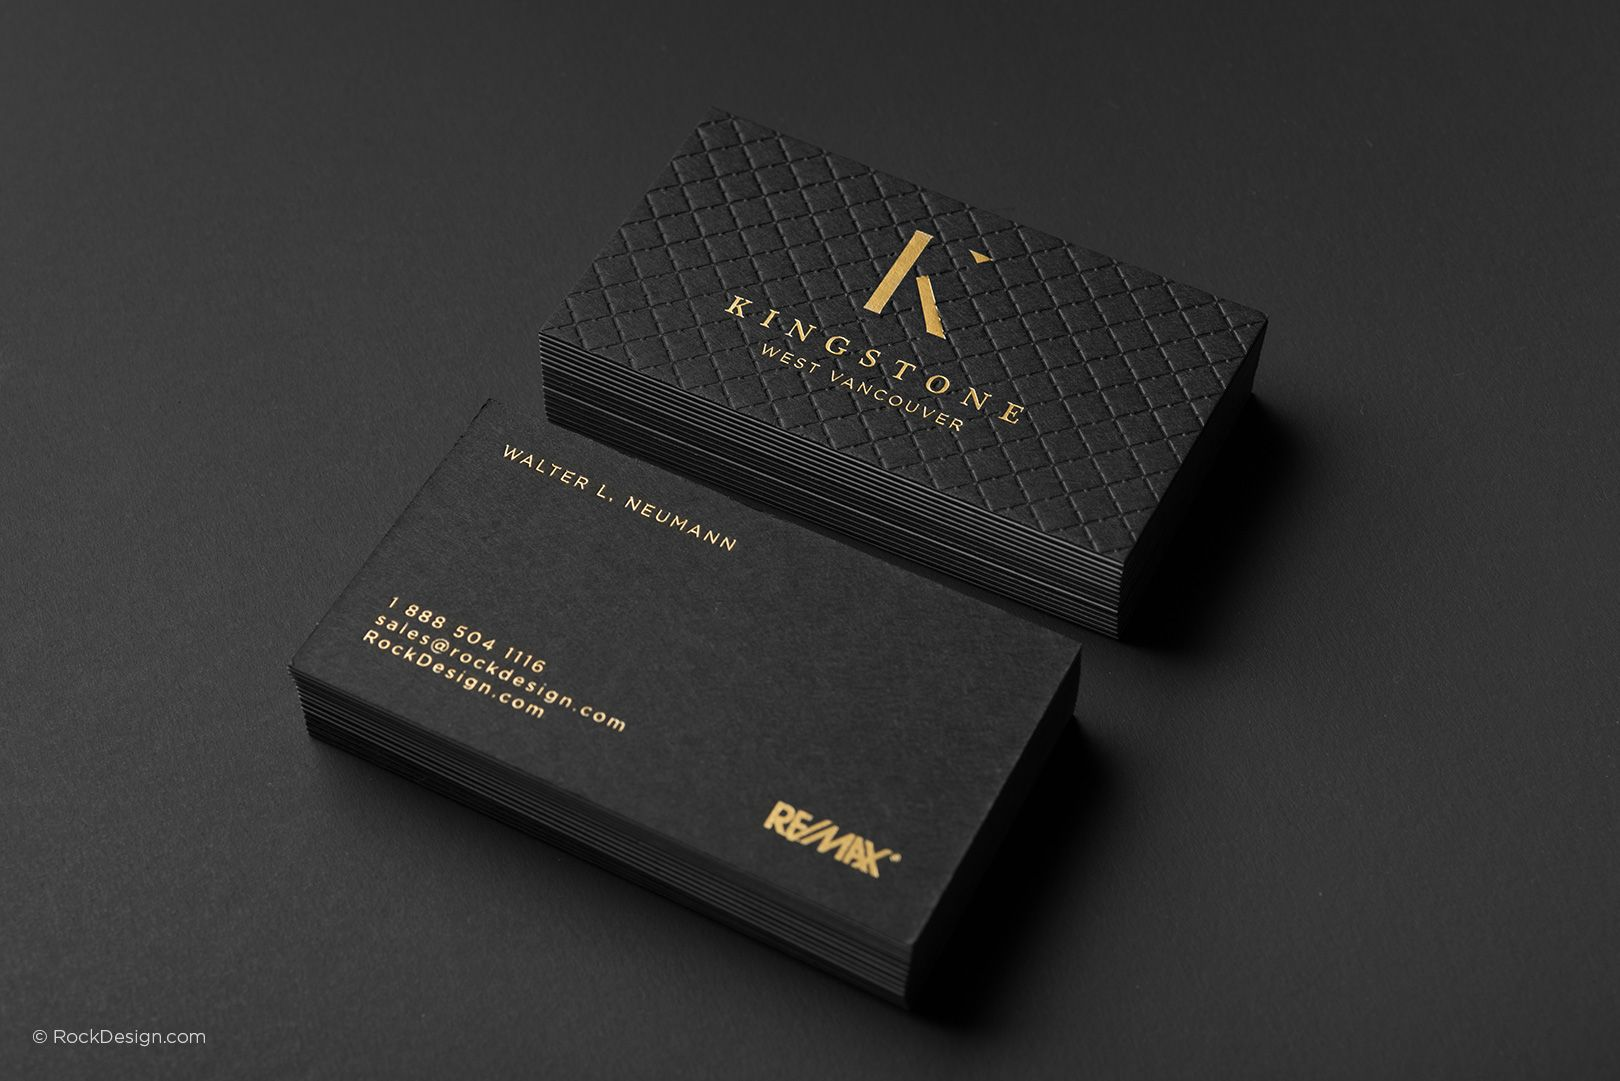 Etiquette tips on business cards real estate pinterest luxury luxury realtor triplex with gold foil business card template kingstone rockdesign luxury business card printing colourmoves